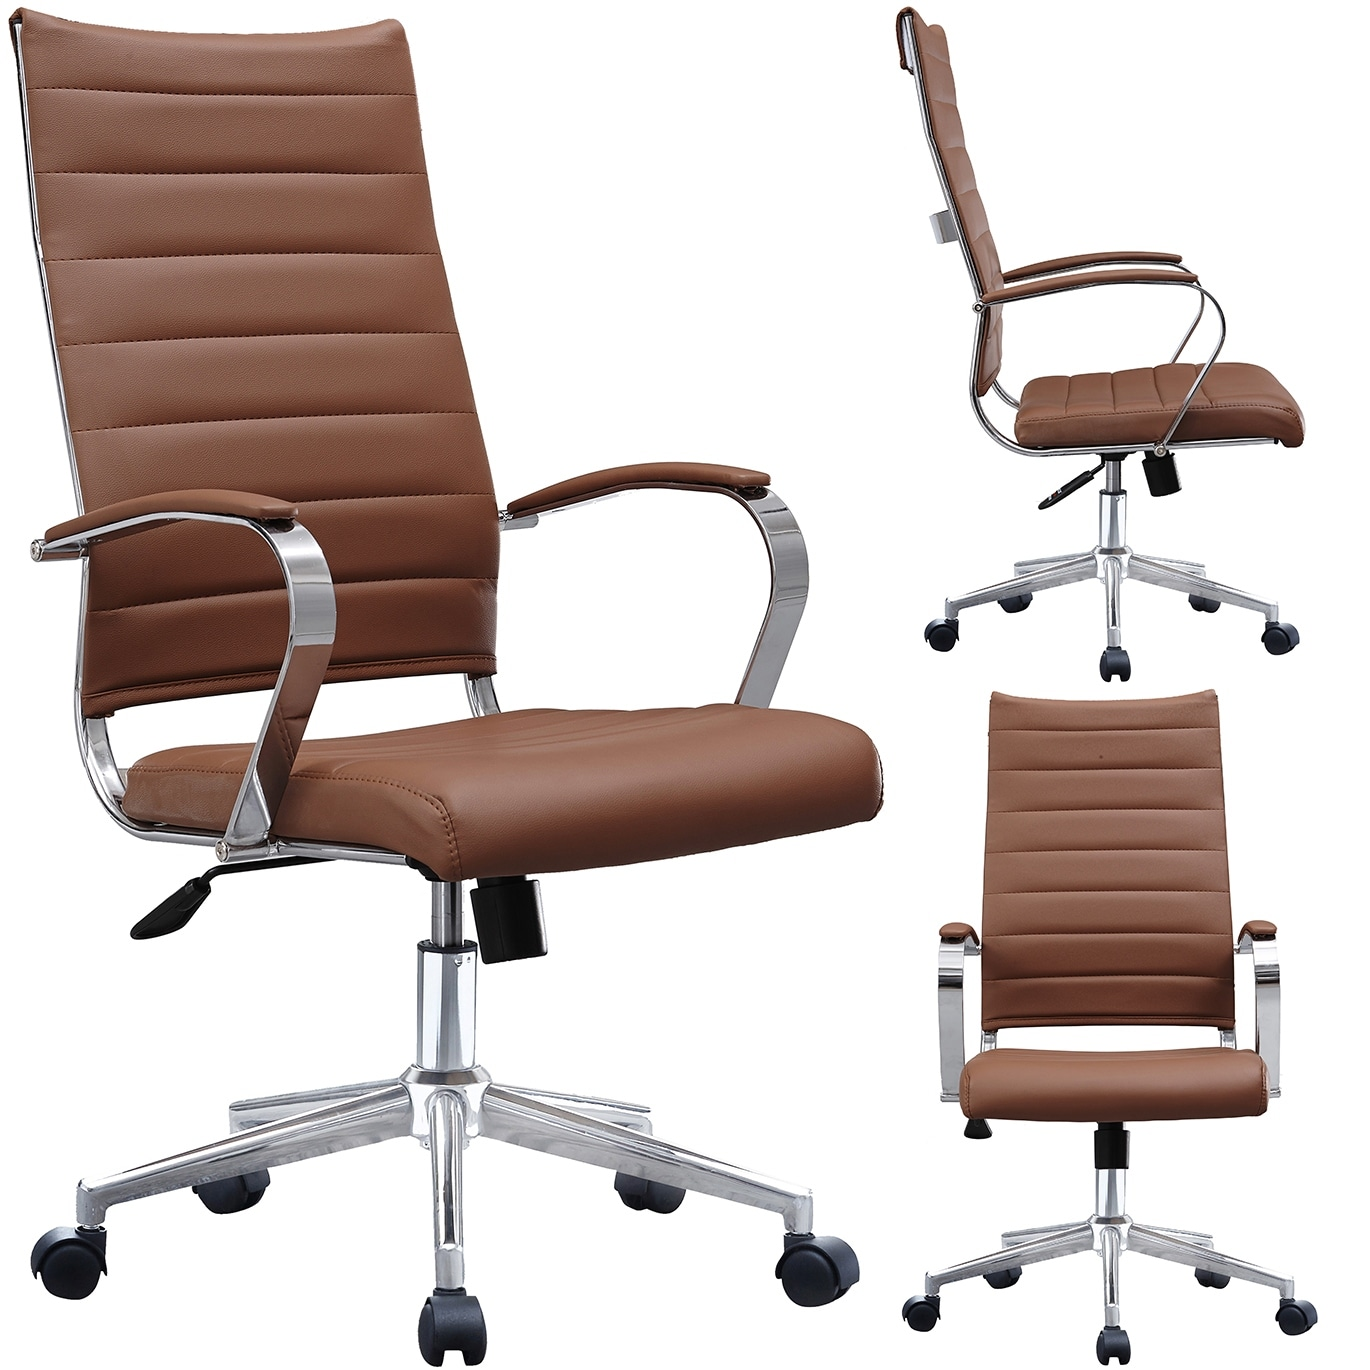 Shop 2xhome Modern Brown High Back Office Chair Ribbed Pu Leather Swivel Conference Room Computer Desk Visitor Vintage Retro Boss On Sale Overstock 15077920